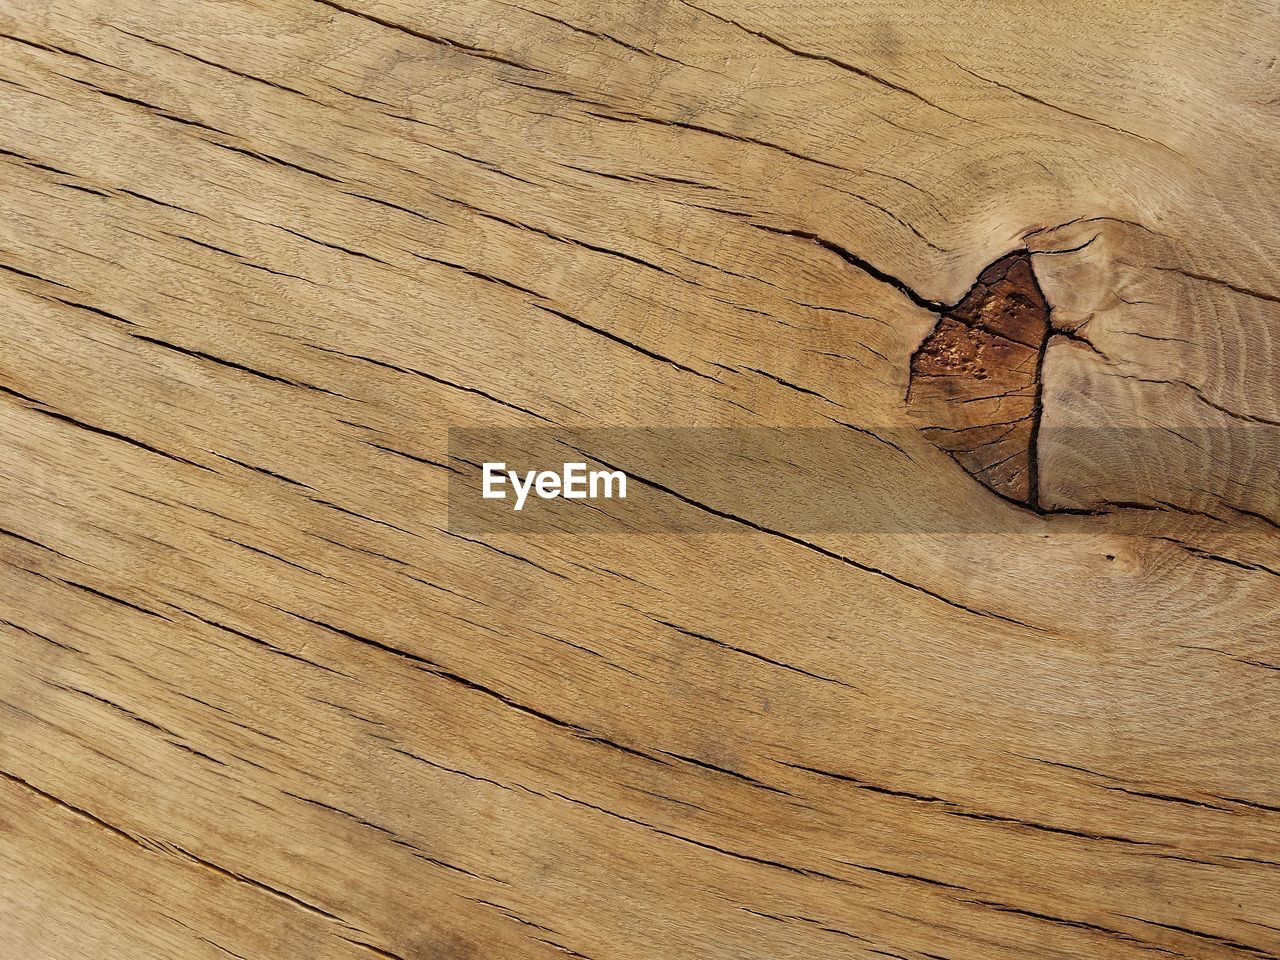 wood - material, pattern, full frame, textured, brown, backgrounds, no people, wood, close-up, tree, plank, rough, high angle view, indoors, wood grain, day, directly above, table, nature, cracked, tree ring, bark